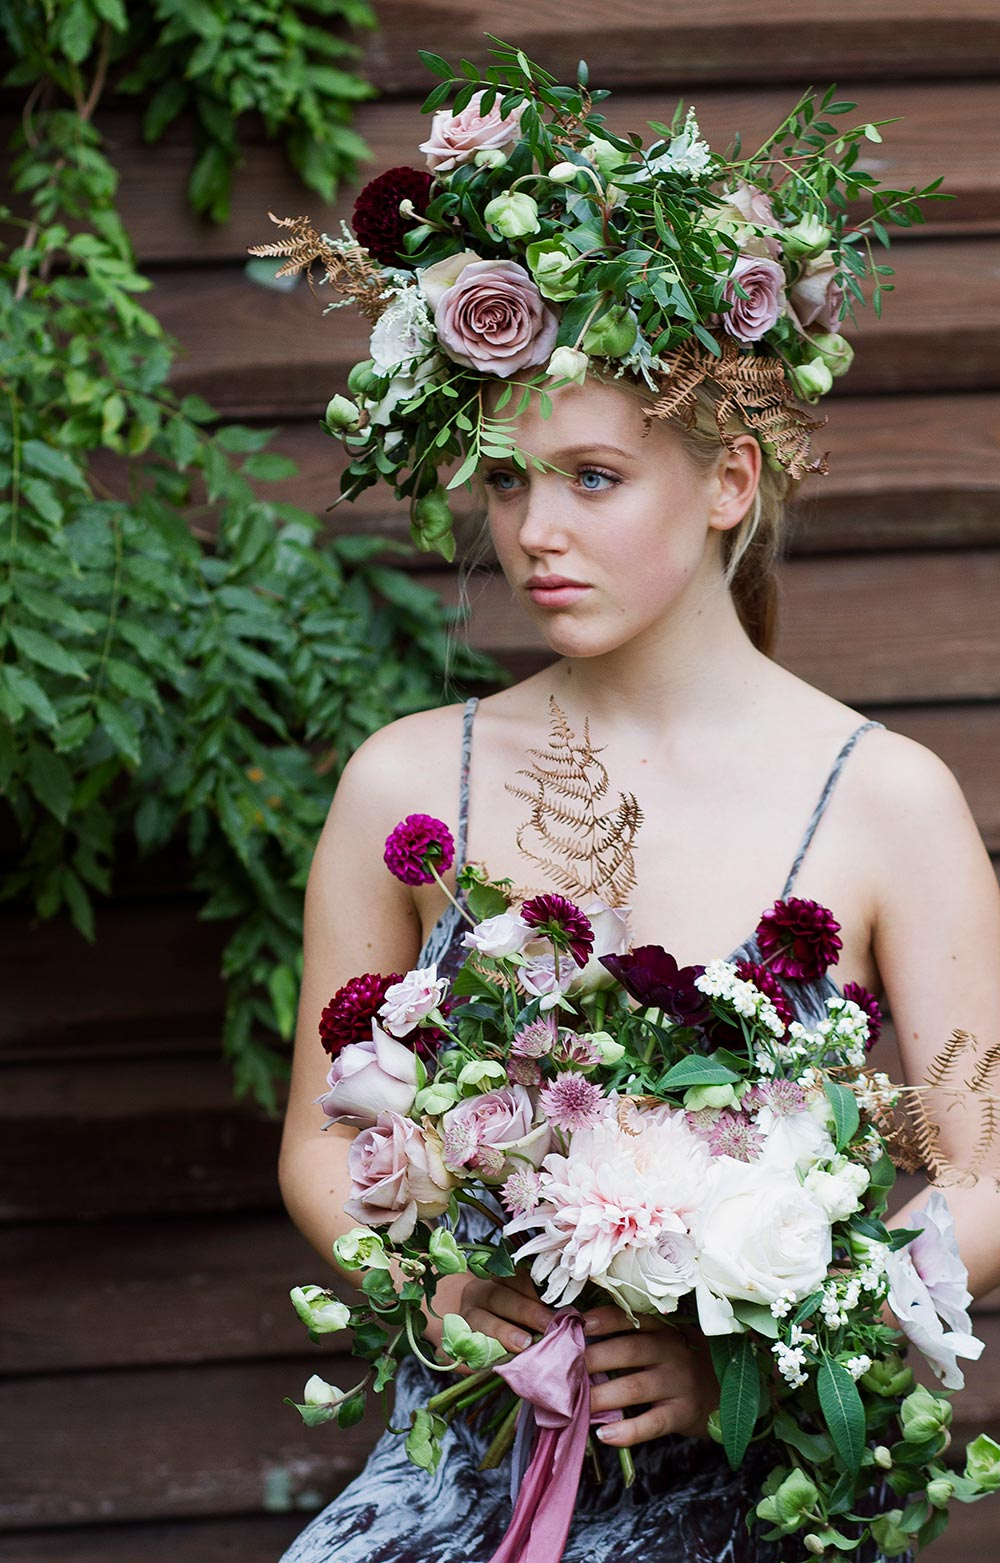 13-wilde-thyme-photoshoot-styling-head-dress.jpg